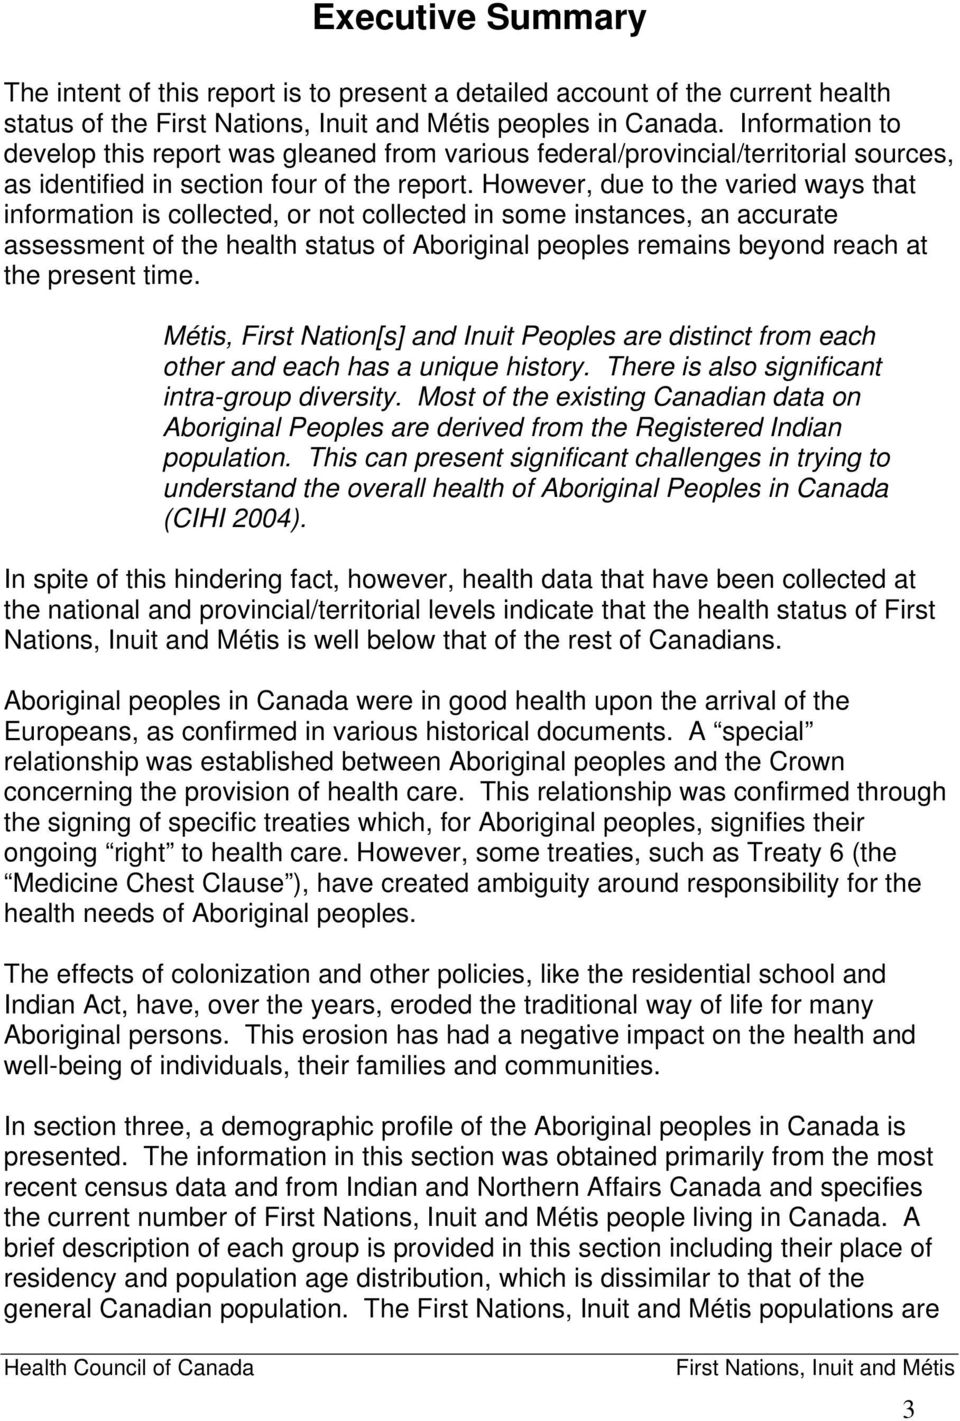 However, due to the varied ways that information is collected, or not collected in some instances, an accurate assessment of the health status of Aboriginal peoples remains beyond reach at the